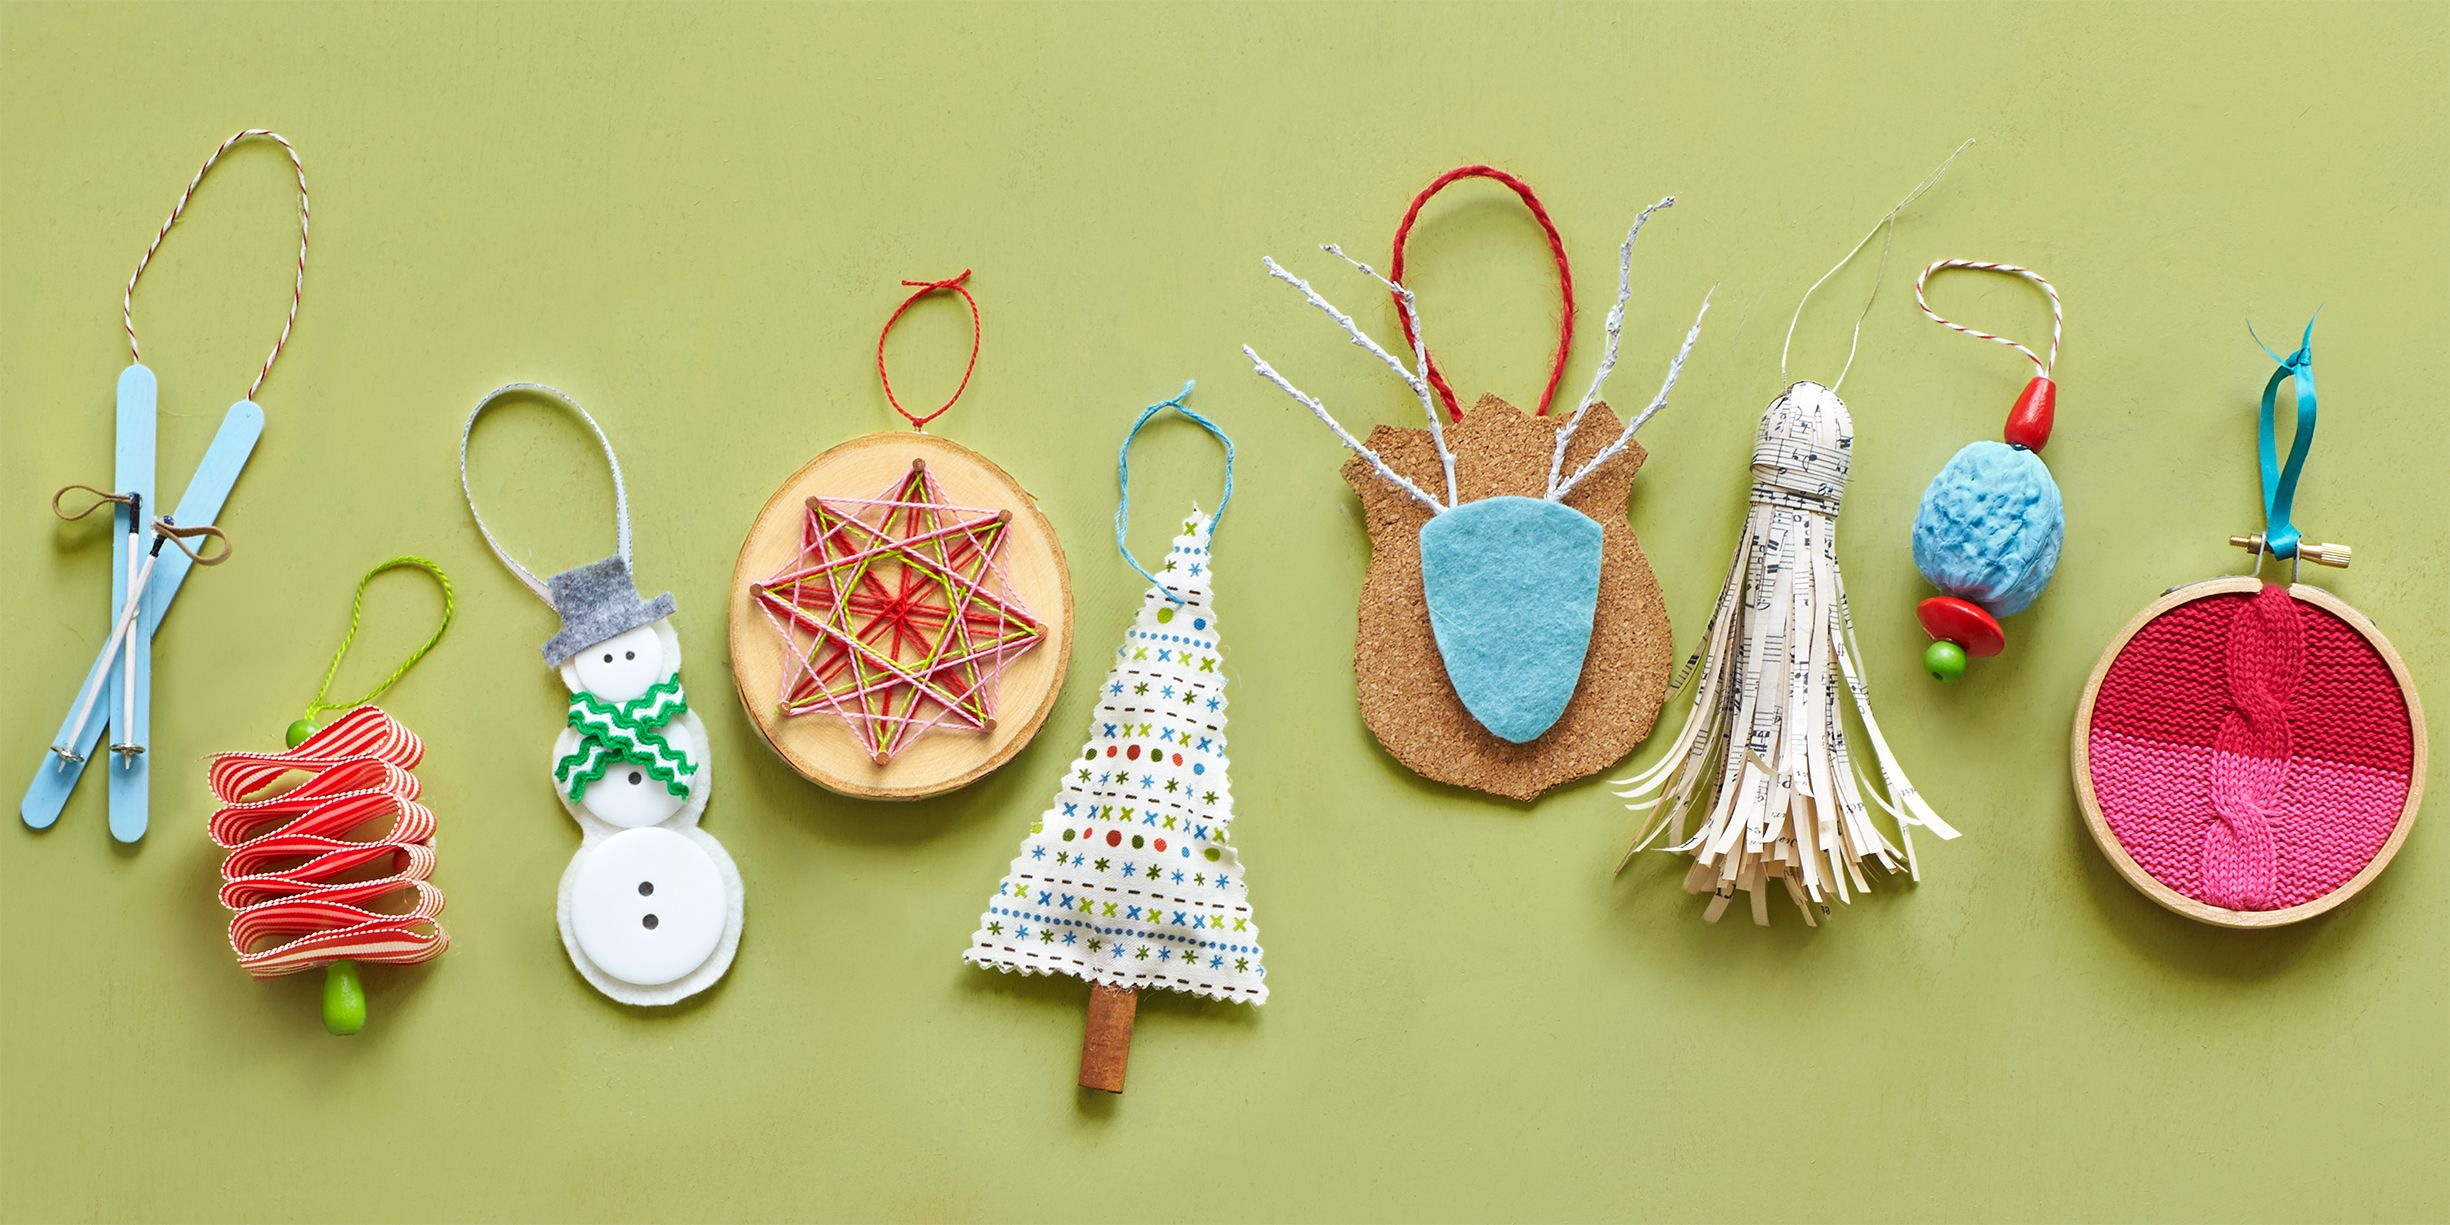 75 DIY Homemade Christmas Gifts - Craft Ideas for Christmas Presents